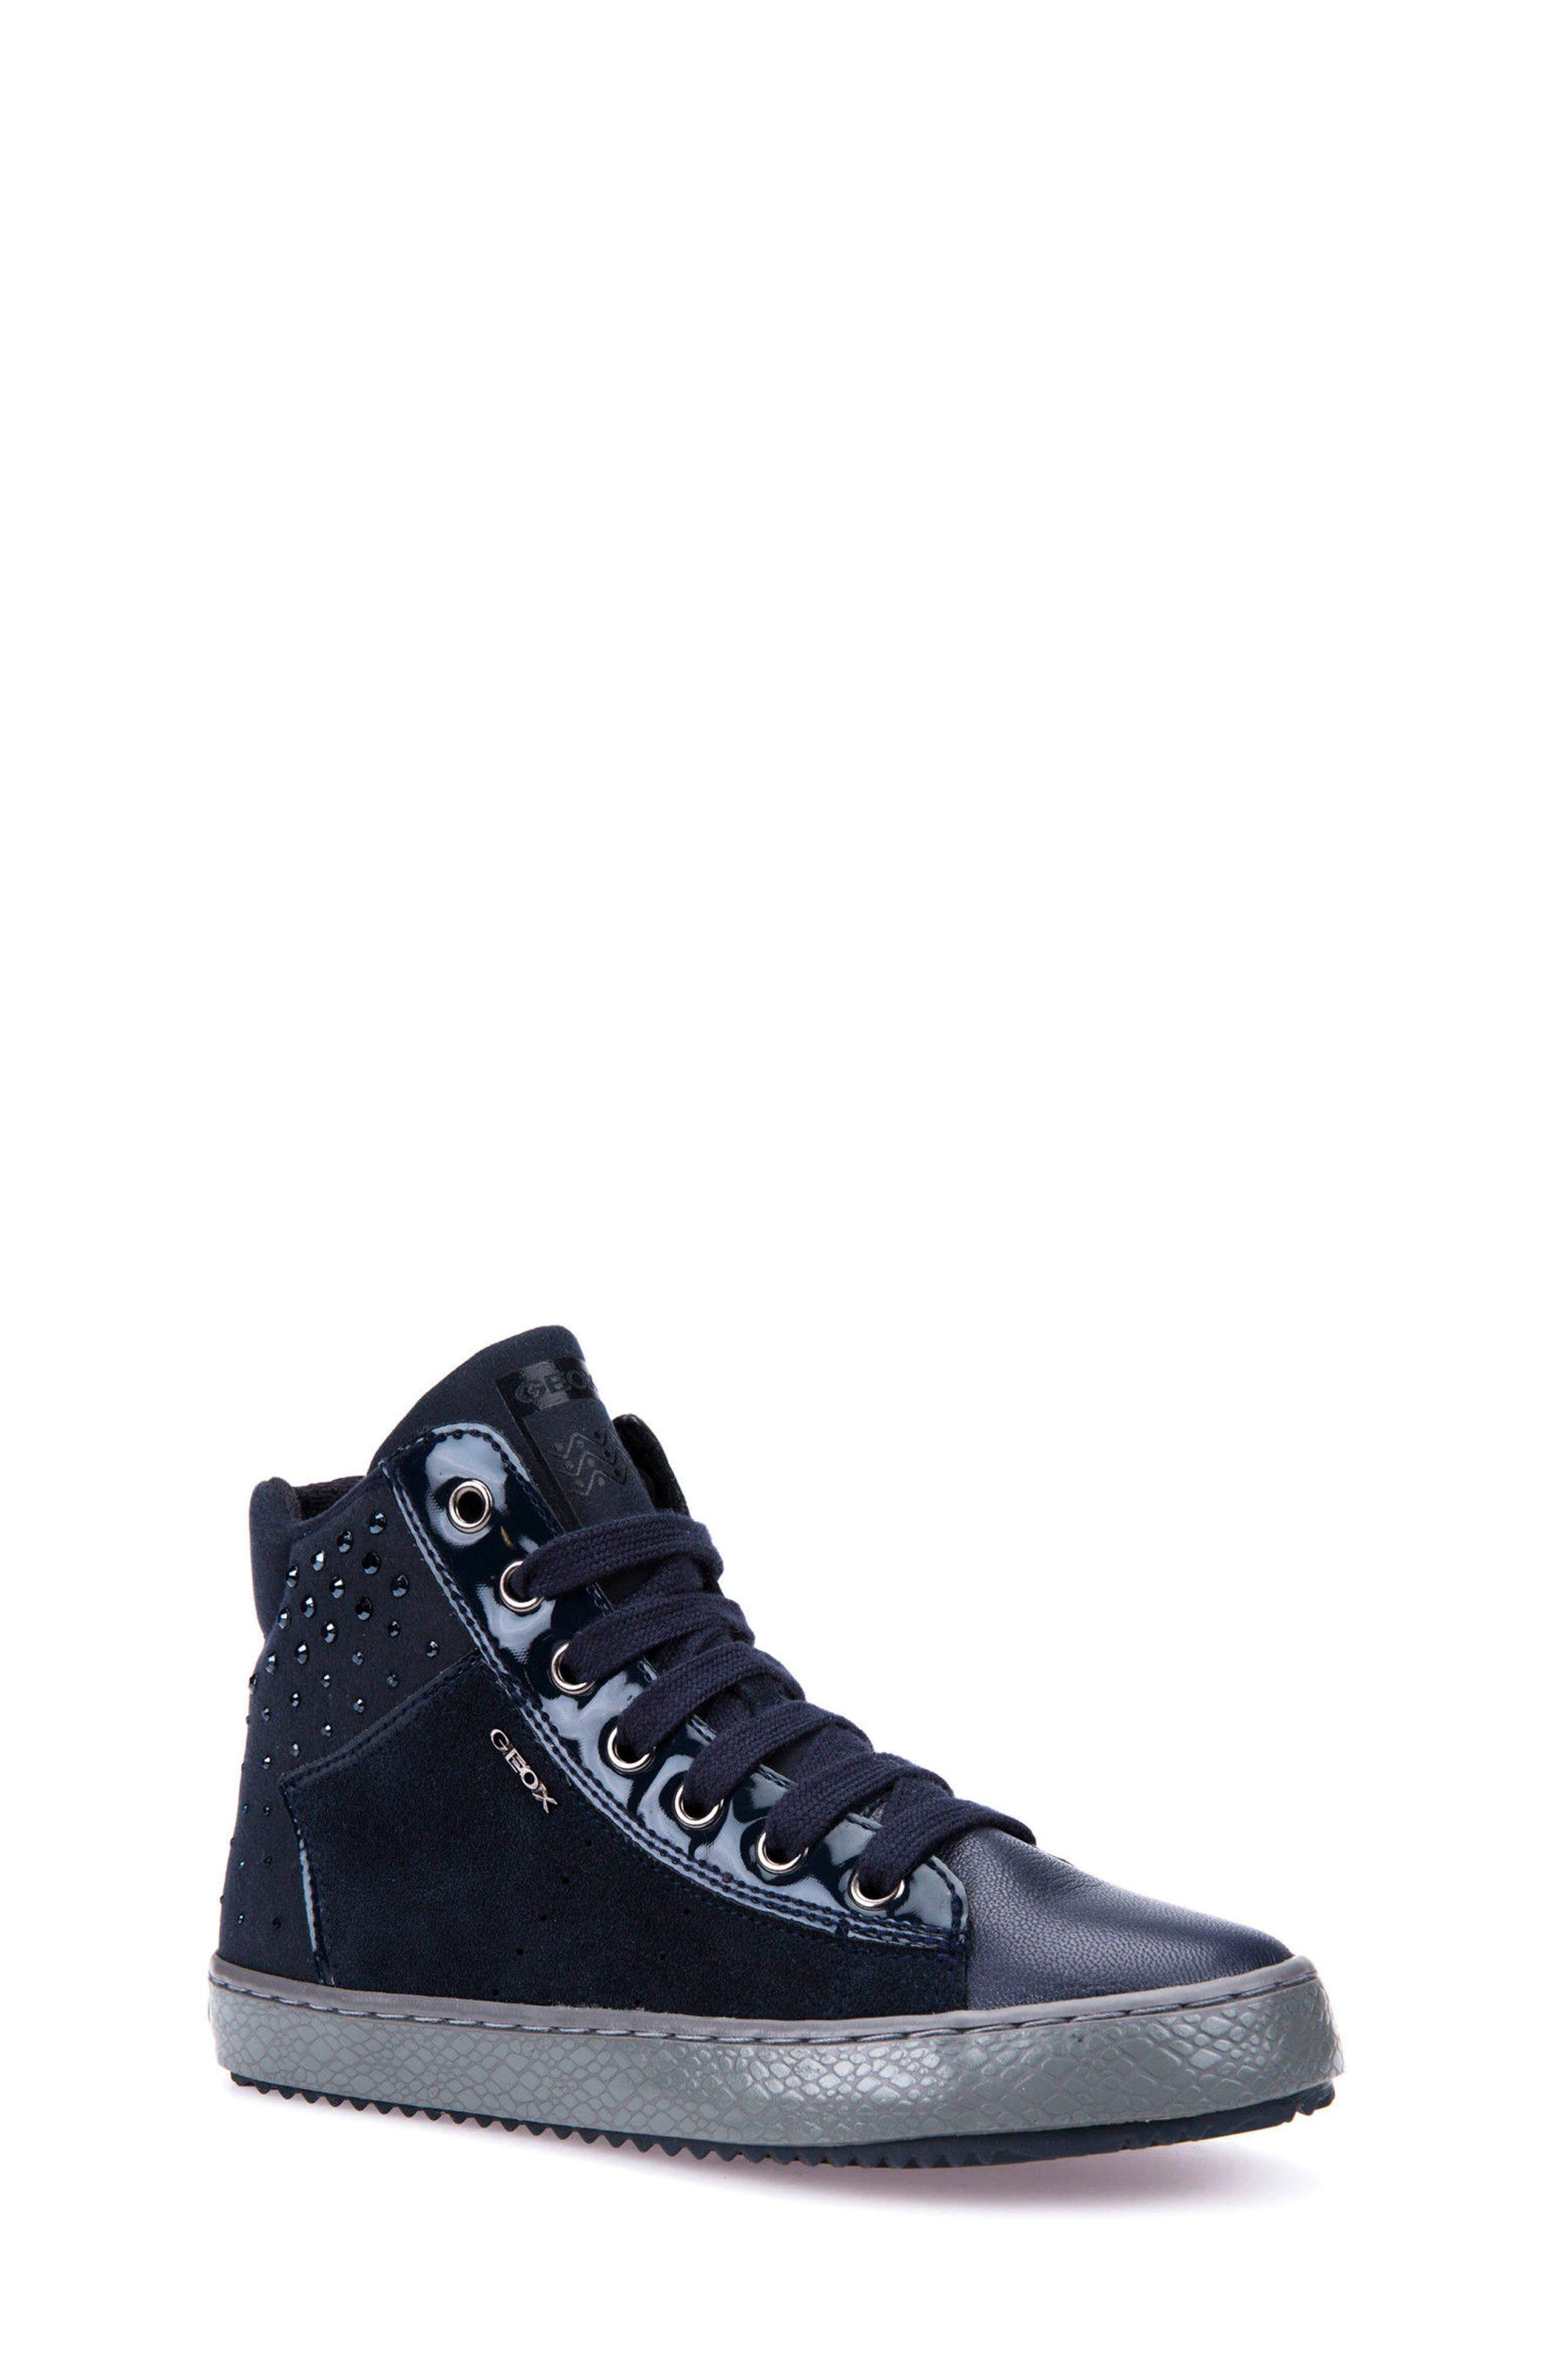 Alternate Image 1 Selected - Geox Kalispera Girl Embellished High Top Sneaker (Toddler, Little Kid & Big Kid)